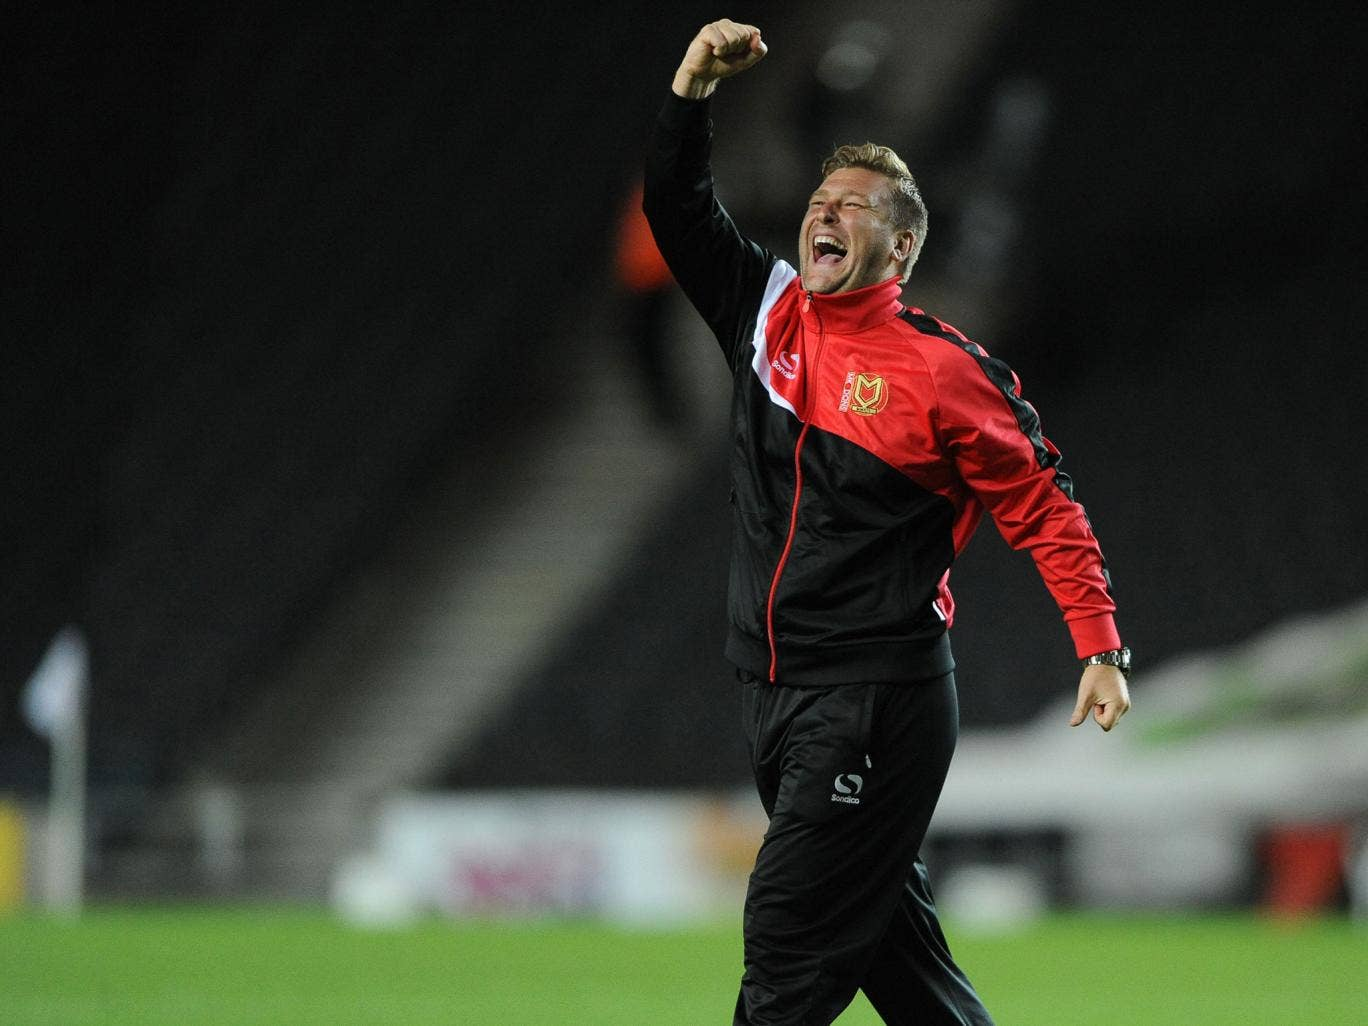 Robinson celebrated five years at the MK Dons helm in May and guided the club into the Sky Bet Championship last season as runne